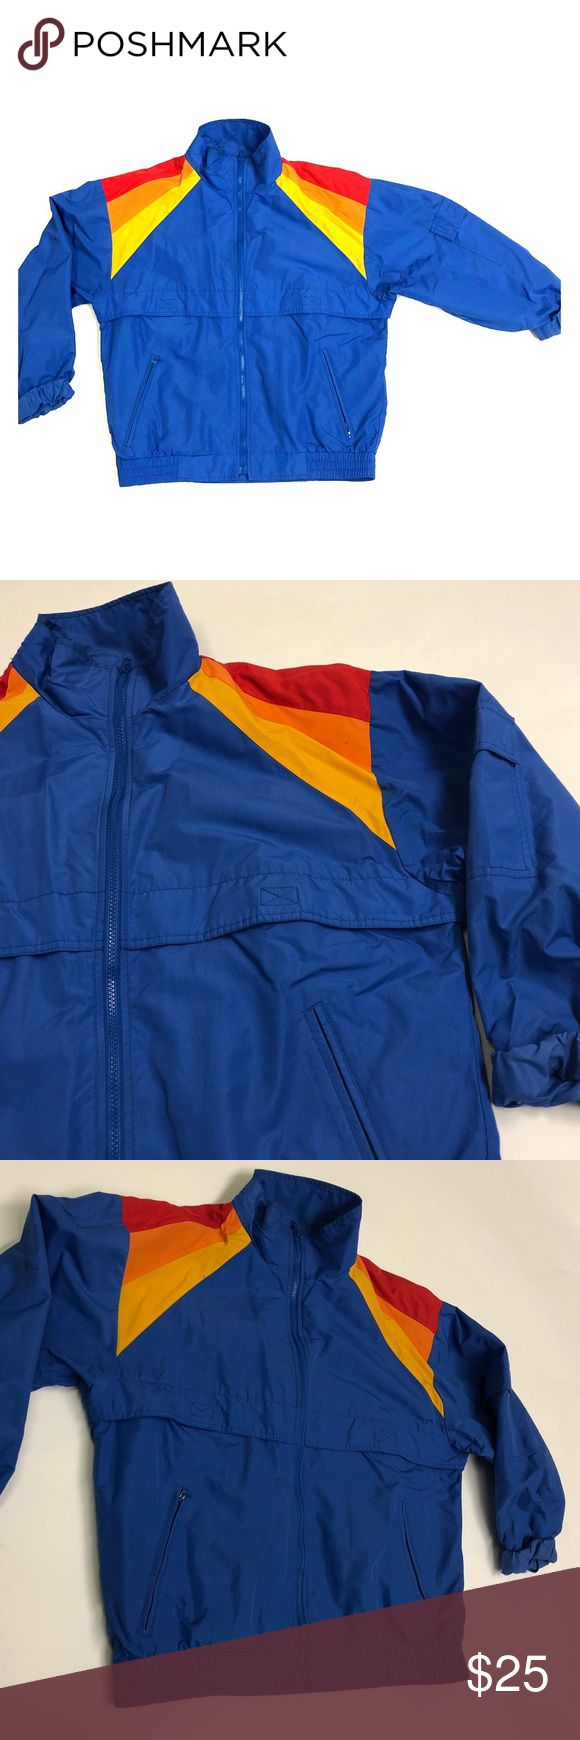 Retro Bomber Jacket  🖤 OFFERS ACCEPTED 🖤 NYLON material  Old school bomber type jacket  Multiple pockets Zippered pockets  Men's Large Hobie Jackets & Coats